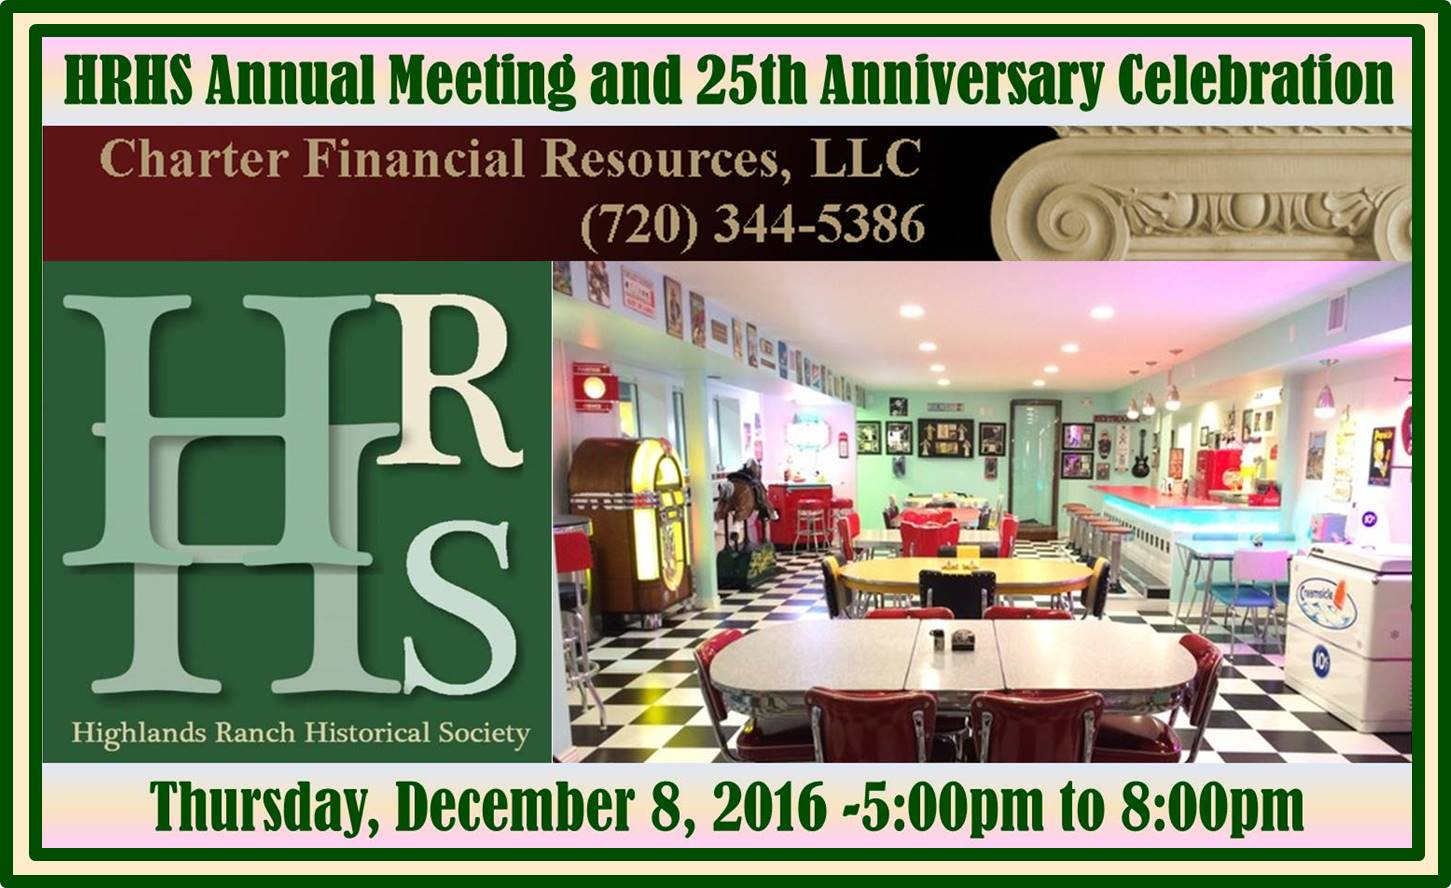 hrhs-annual-meeting-and-25th-anniversary